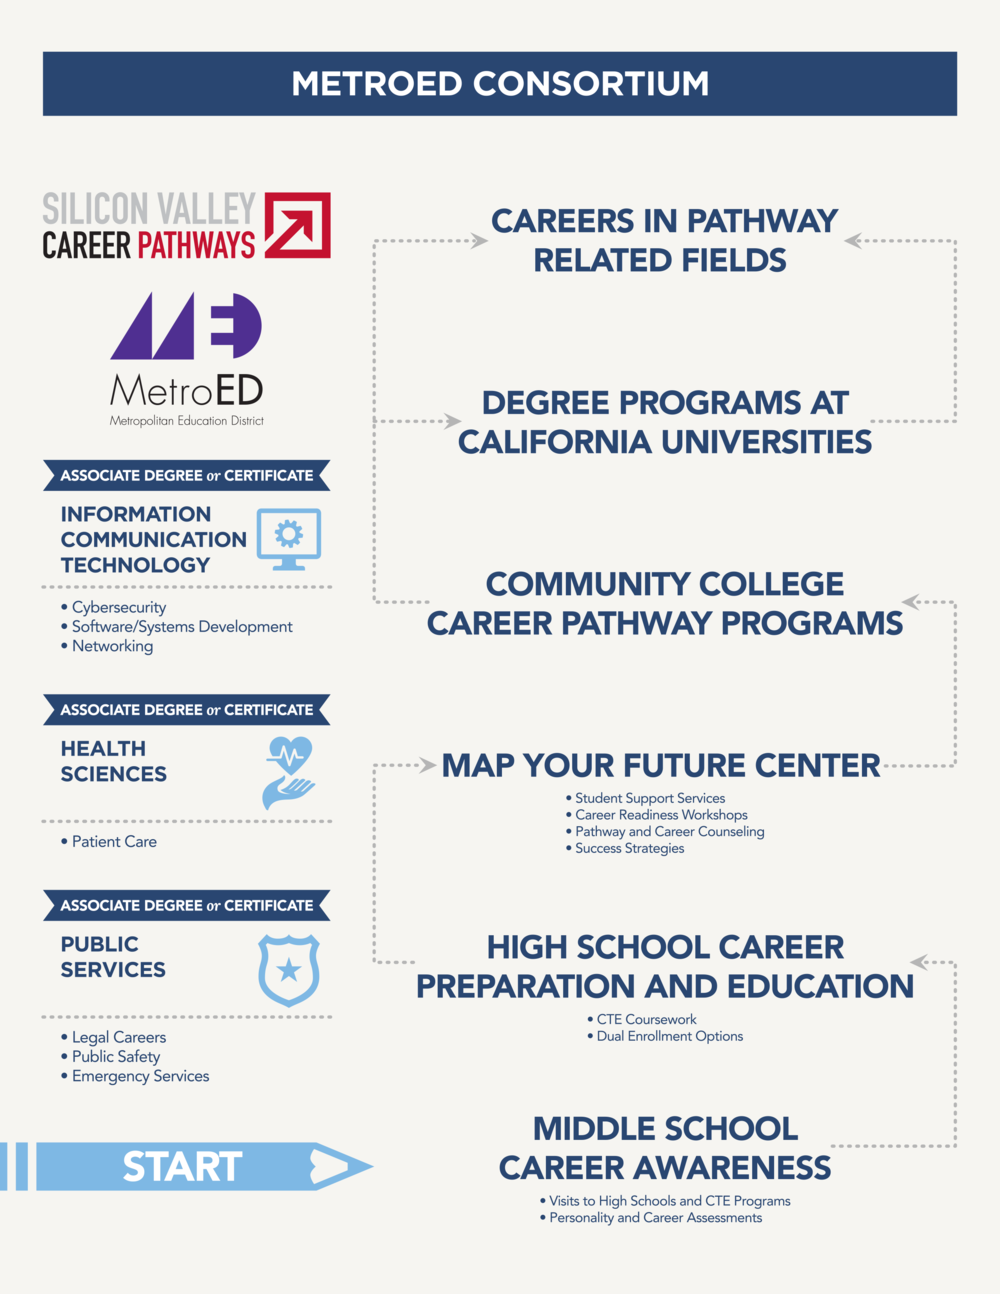 MetroED Career Pathways